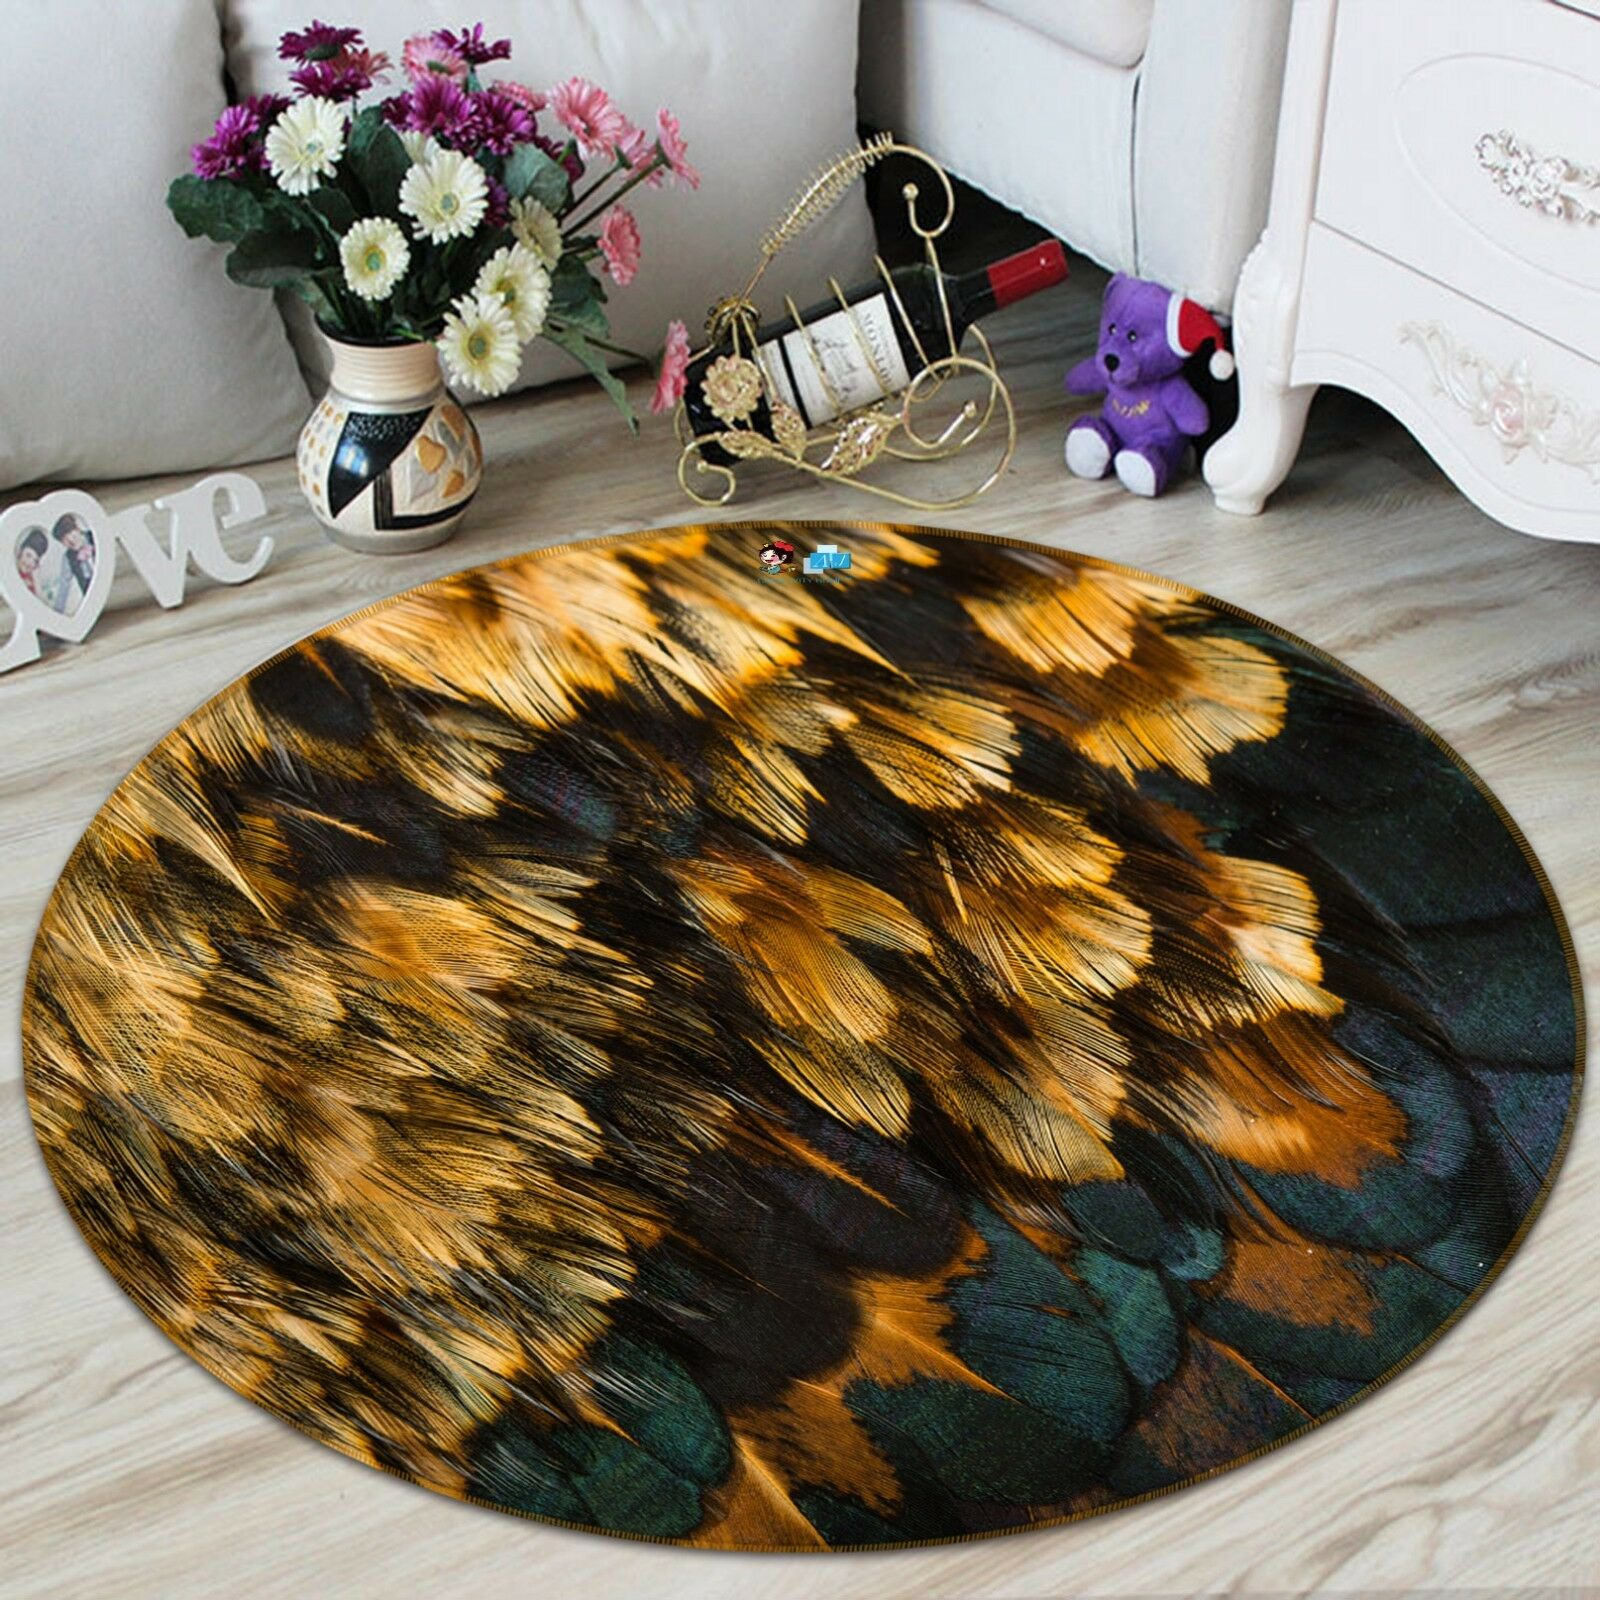 3D Feather Painting 6 6 6  Non Slip Rug Room Mat Round Quality Elegant Photo Carpet decbbc